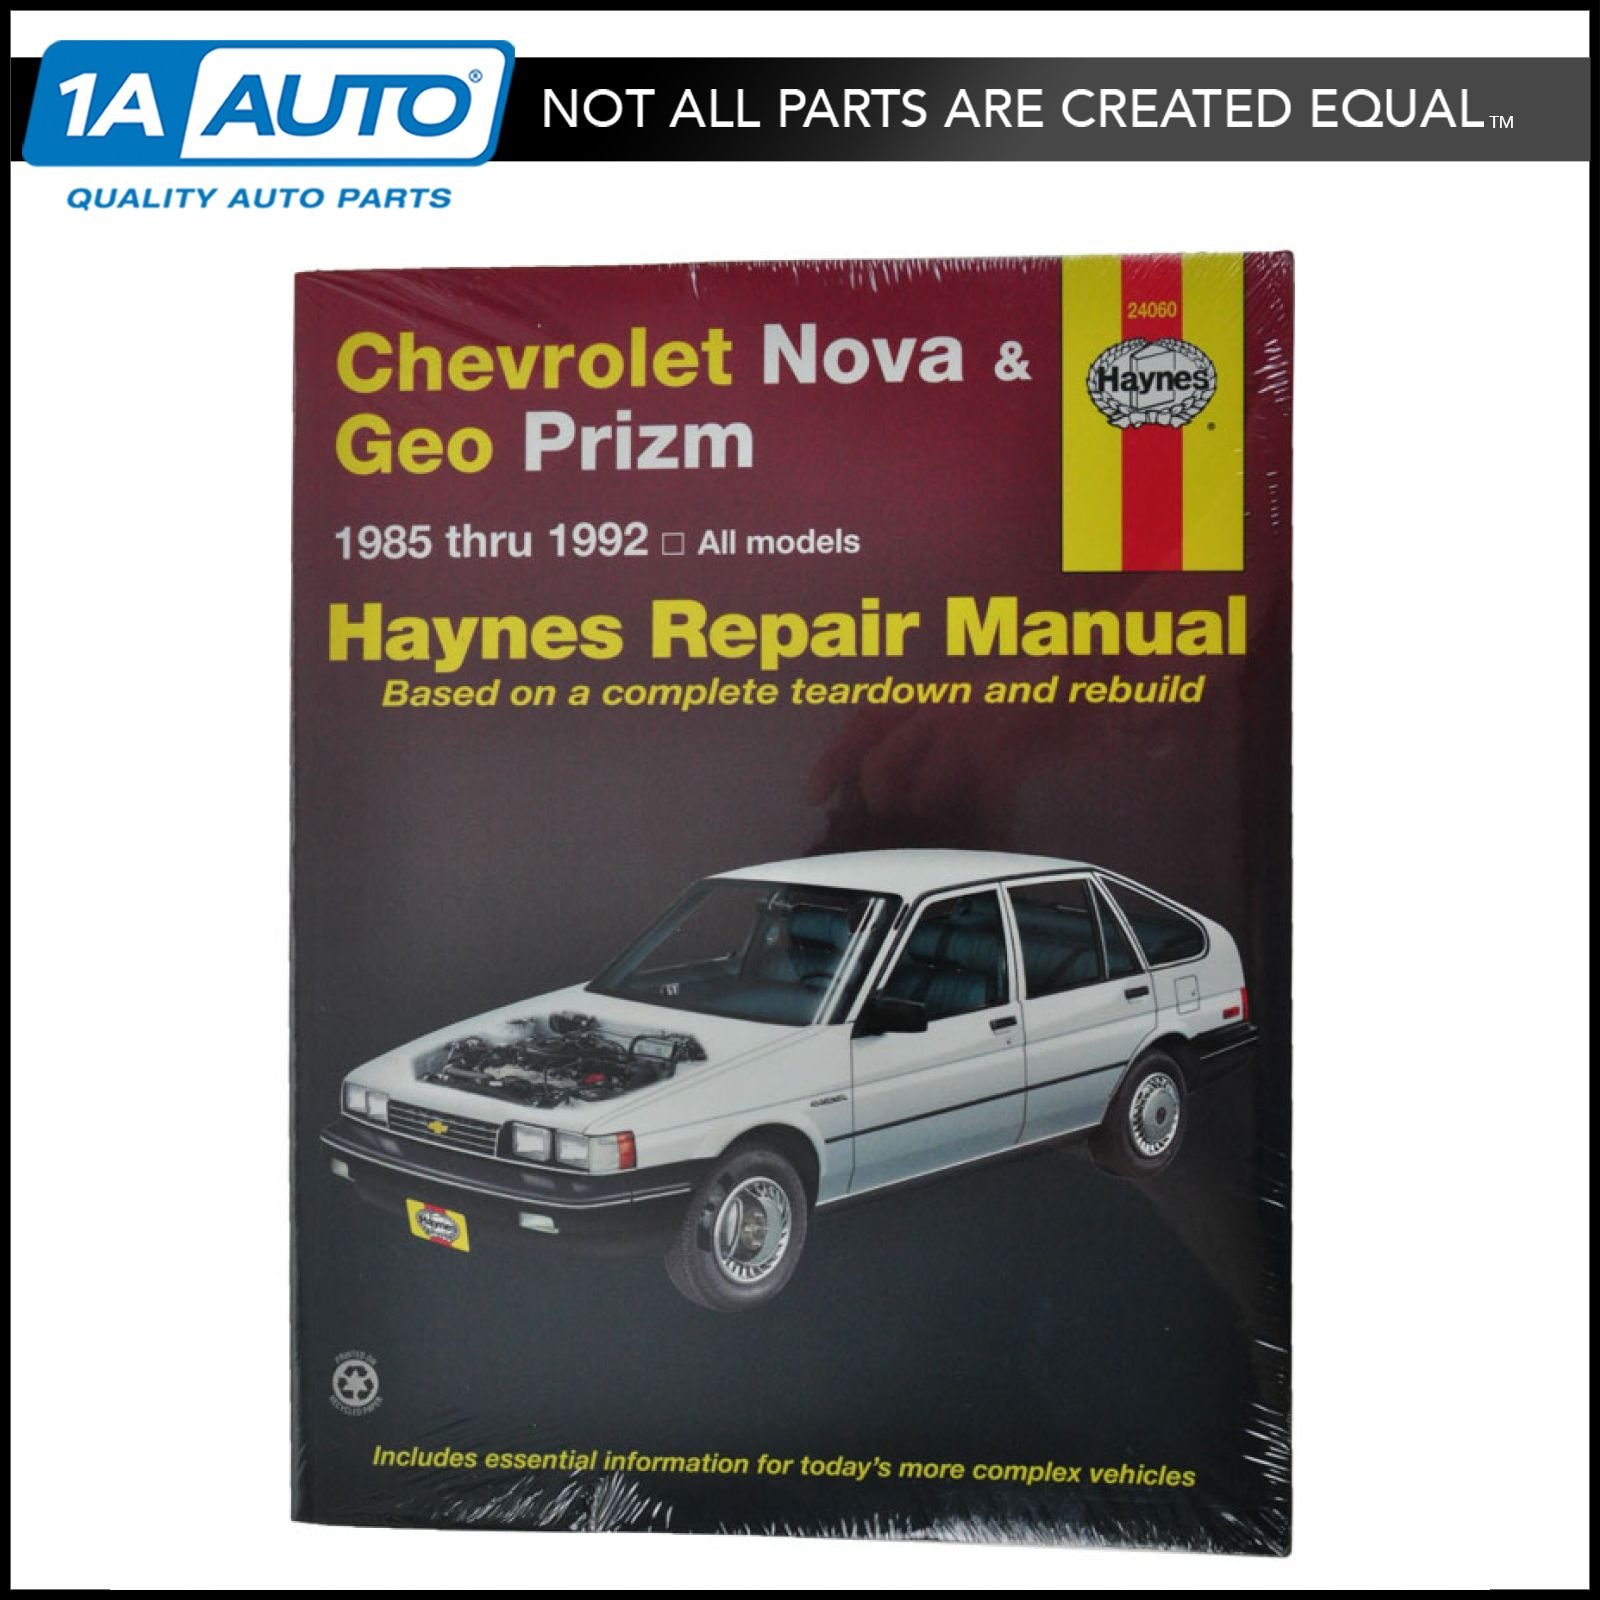 haynes repair manual for geo prizm chevy nova ebay rh ebay co uk 2000 chevy  prizm repair manual pdf 1999 chevy prizm repair manual download